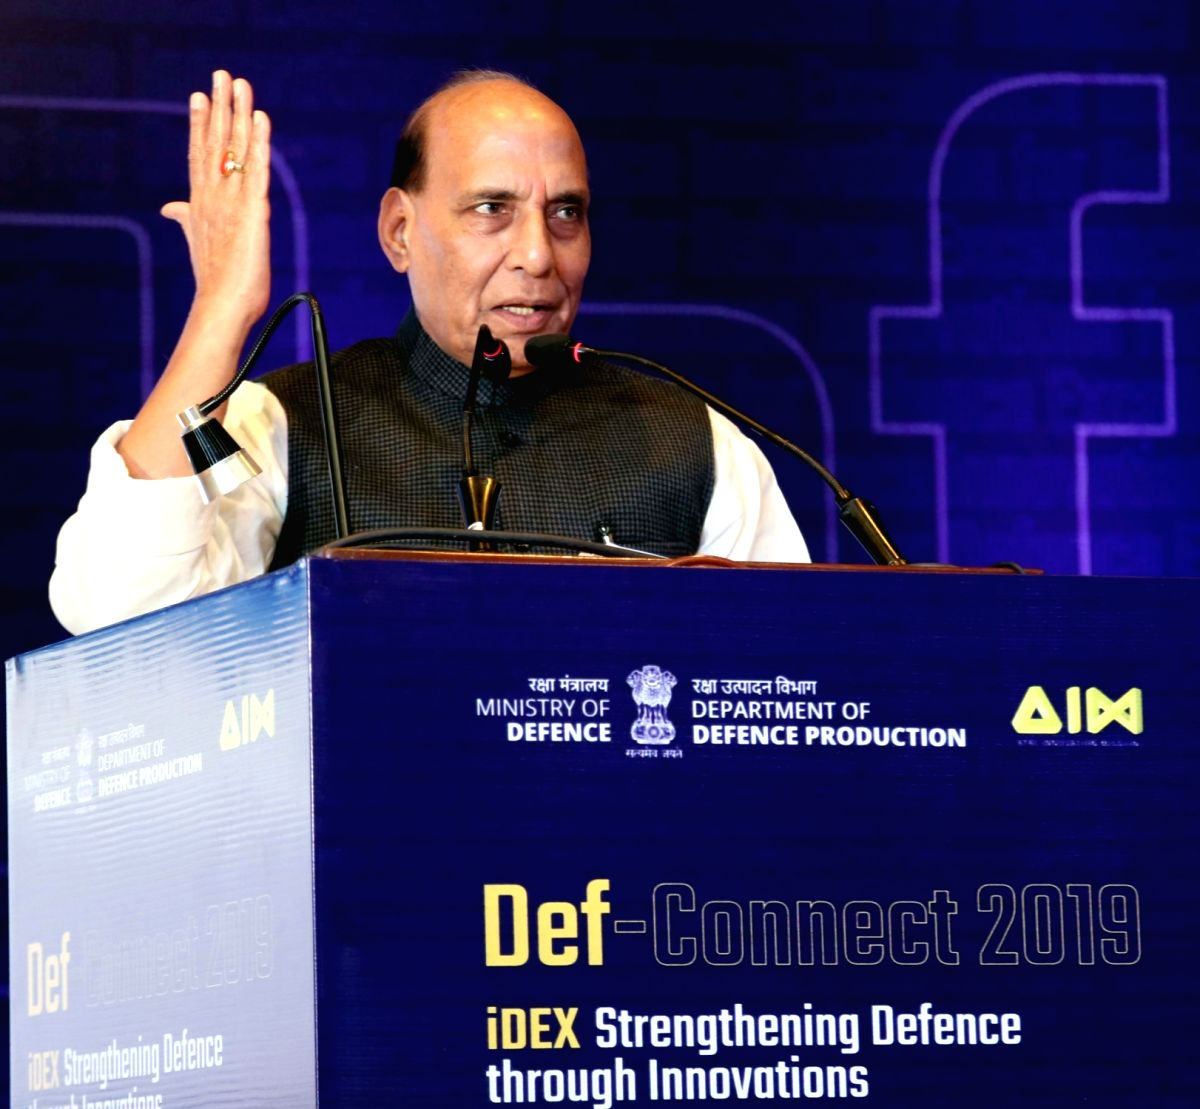 New Delhi: Defence Minister Rajnath Singh addresses at 'Def-Connect' under the aegis of Innovations for Defence Excellence (iDEX), in New Delhi on Nov 11, 2019. (Photo: IANS/PIB)